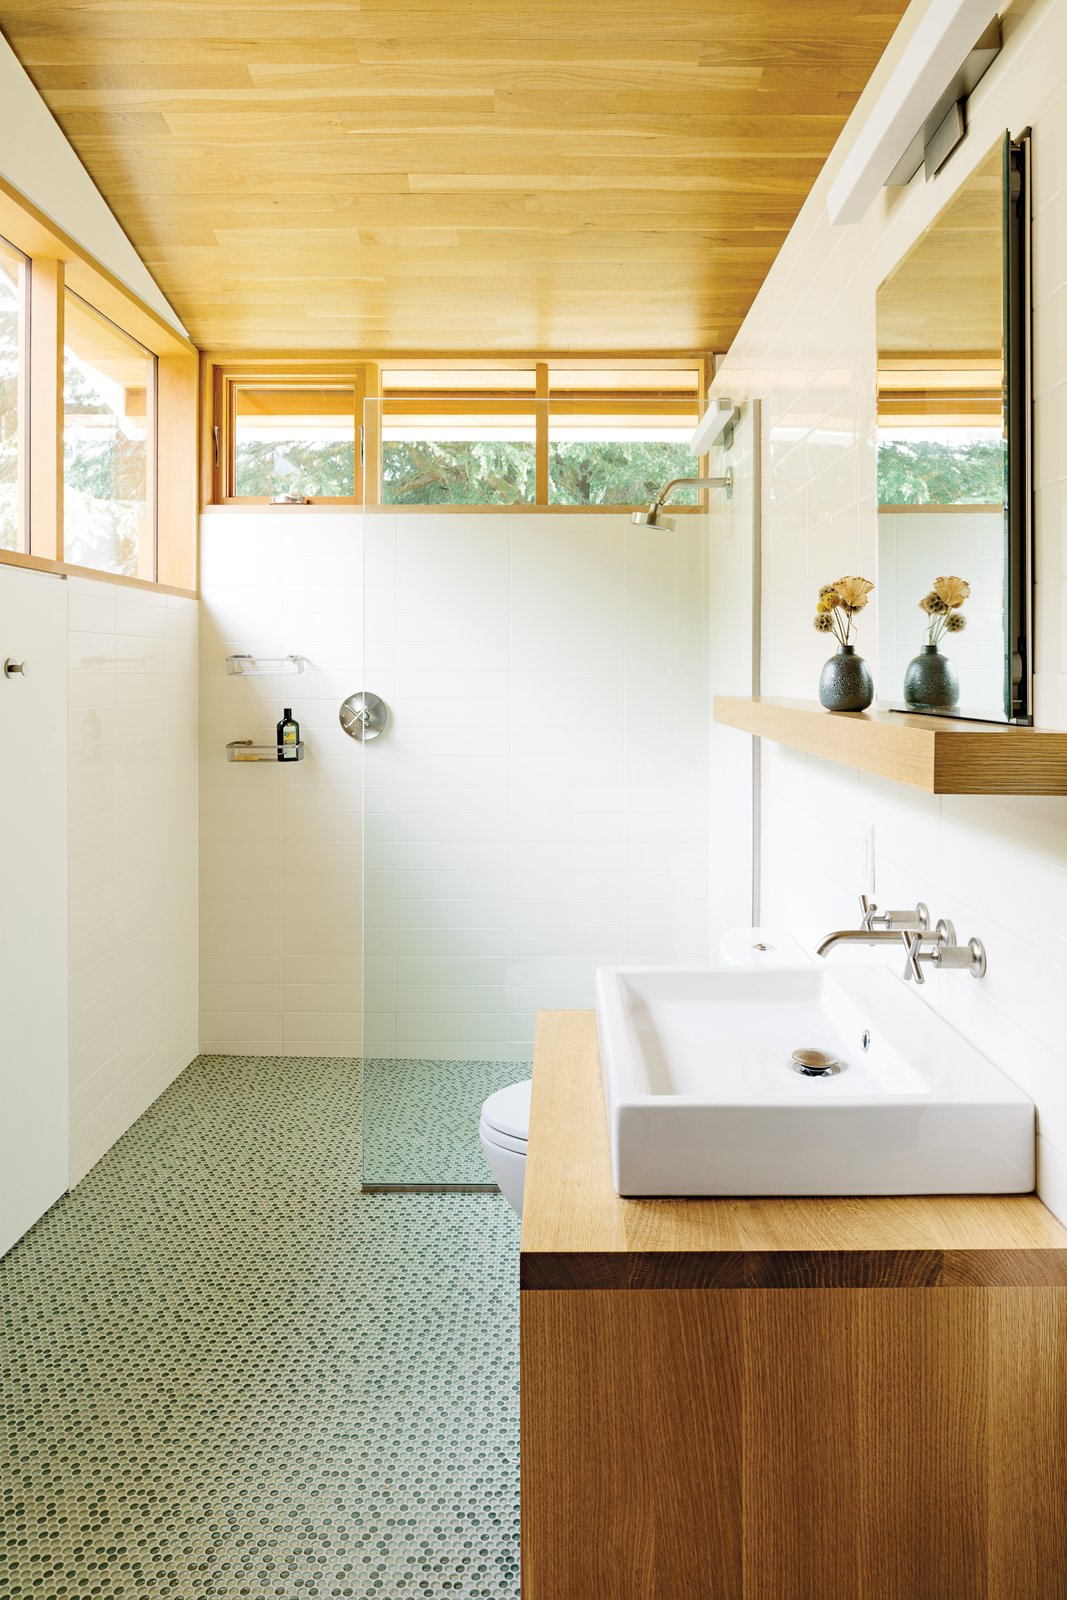 In the bathroom, a thin pane of glass separates the shower; an Aquaplane sink by Lacava hovers above   a built-in vanity illuminated by a lean Adelphi light by Oxygen Lighting; and blue-green glass penny tiles by Terra Verre decorate the floor. The absence of a door, combined with windows on two sides, makes the bathroom feel like a continuation of the overall space. Tagged: Bath Room, Vessel Sink, Full Shower, and Ceramic Tile Floor.  Photo 9 of 10 in Salvaged Wood Renovation in Portland